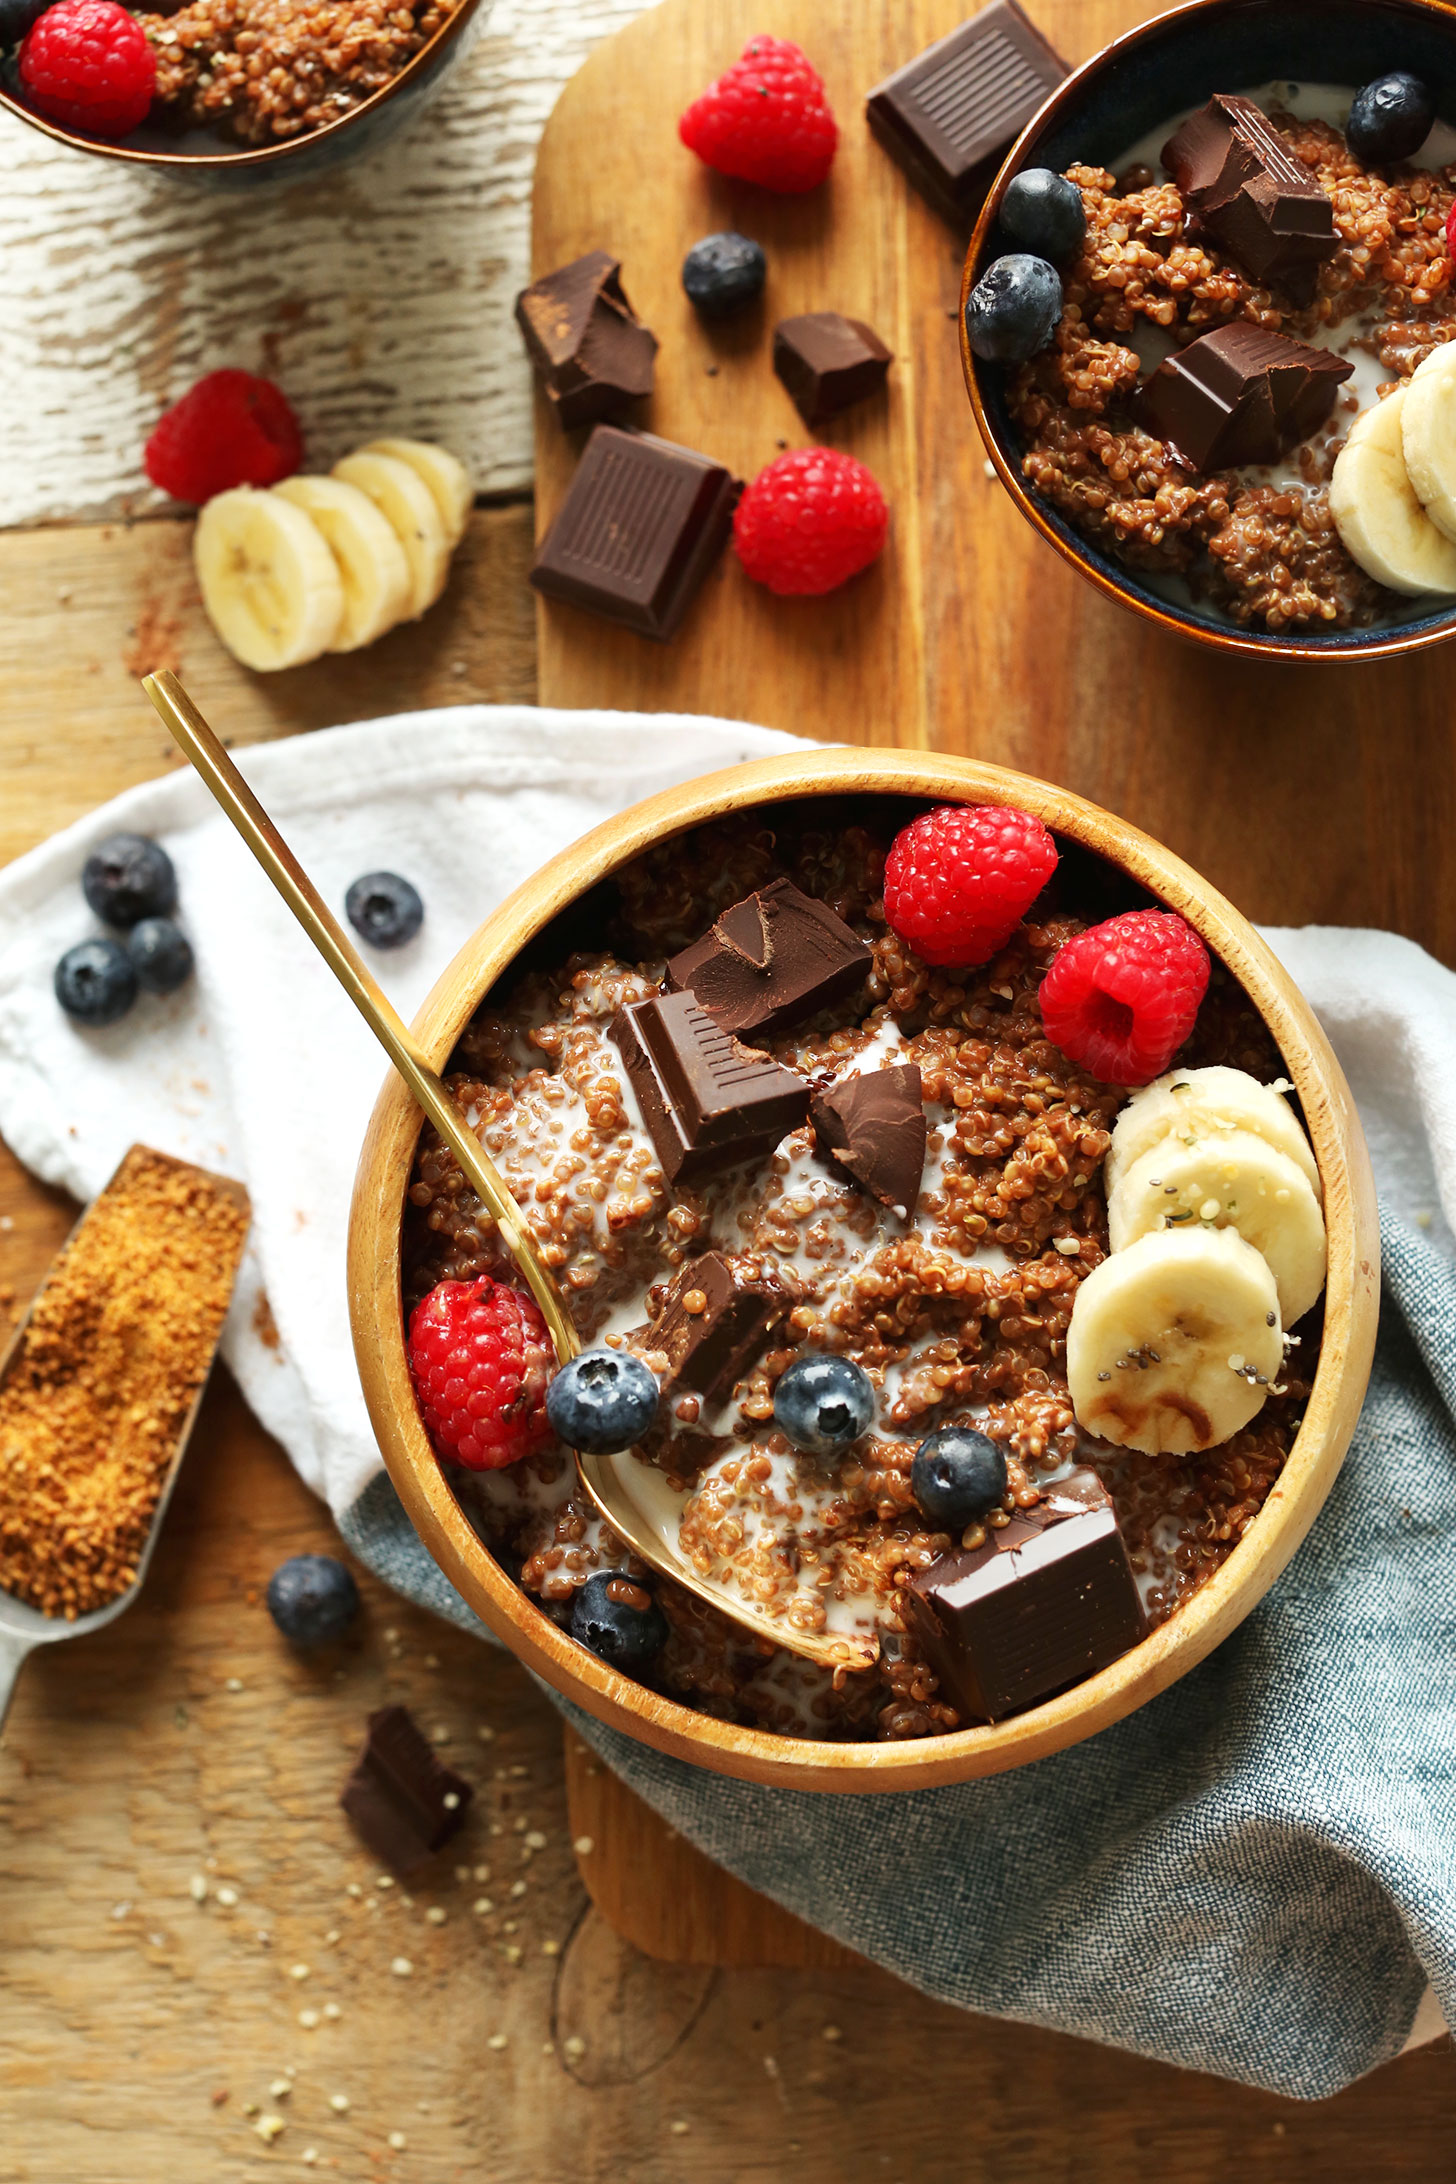 Enjoying a serving of our gluten-free vegan Dark Chocolate Quinoa Breakfast Bowl recipe